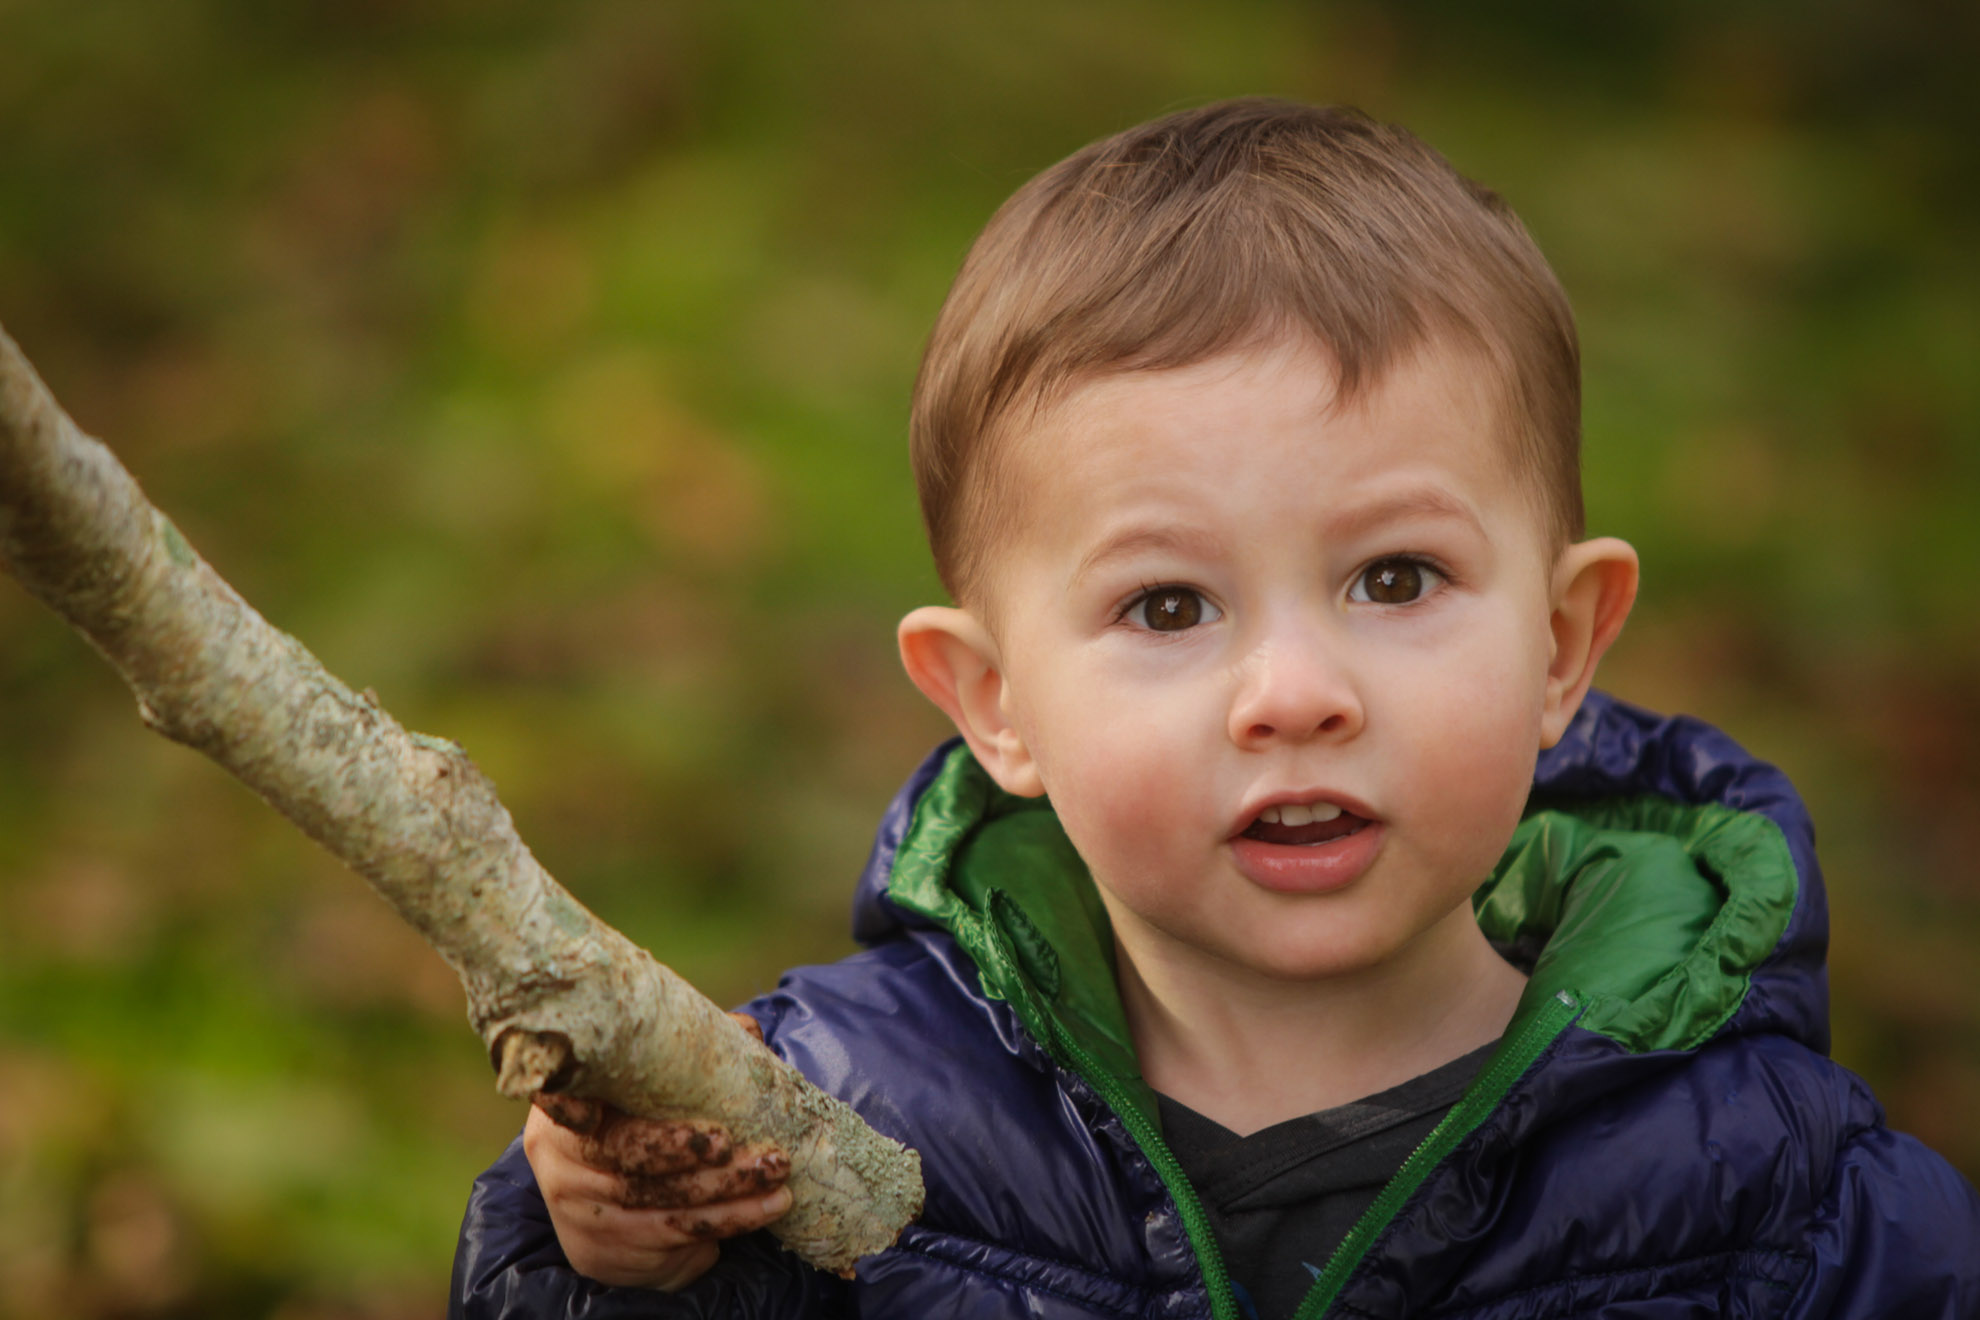 Hamilton-photographer-outdoor-portrait-session-with-toddler.jpg